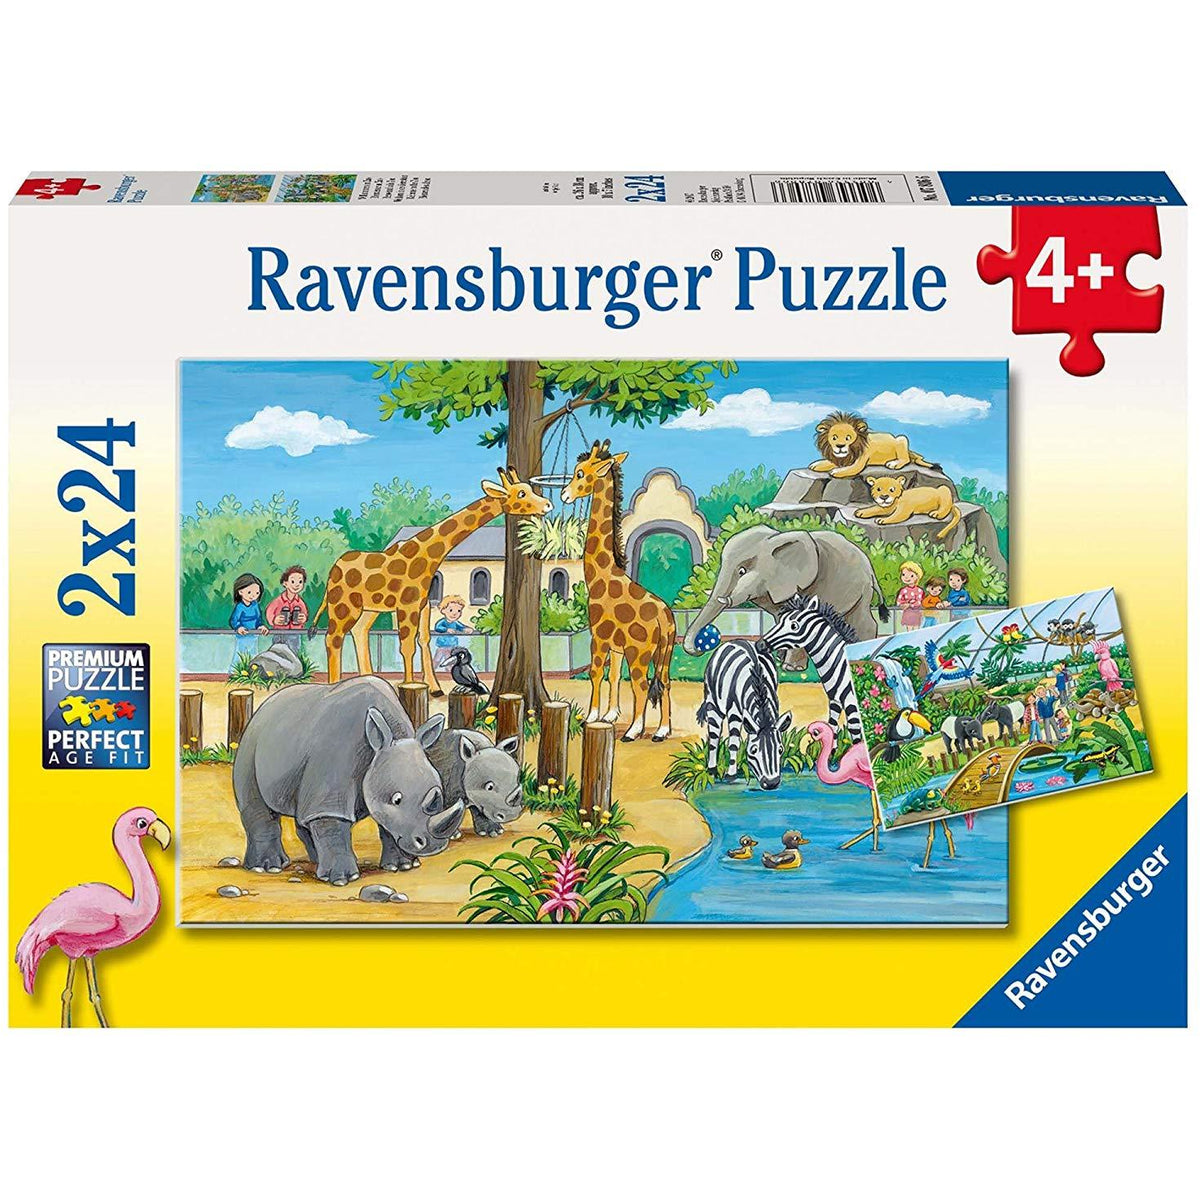 Ravensburger 2x24 Piece Puzzle Welcome to the Zoo